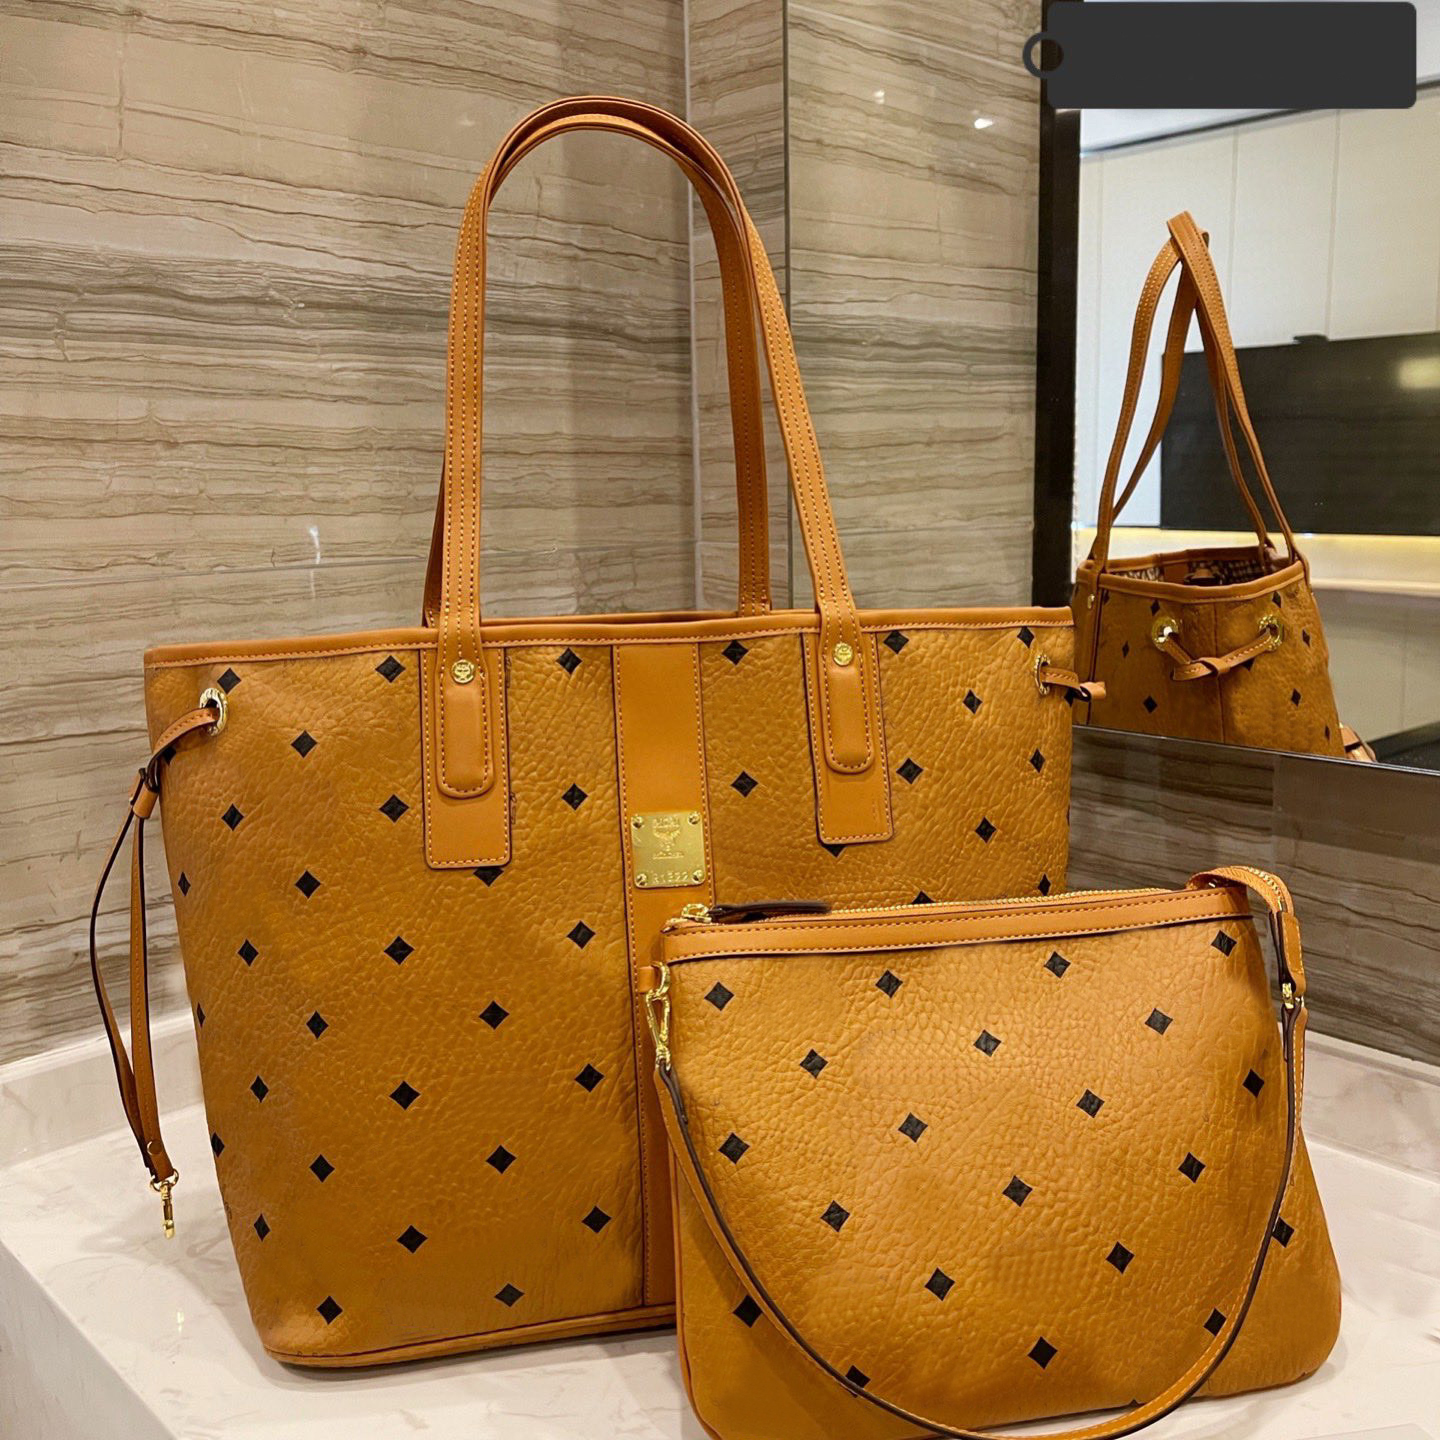 Fashion Shoulder shopping Luxury Designer Brand composite Bags Handbags totes High Quality purse phone bag letter Womens wallet cross body lady vintage Two